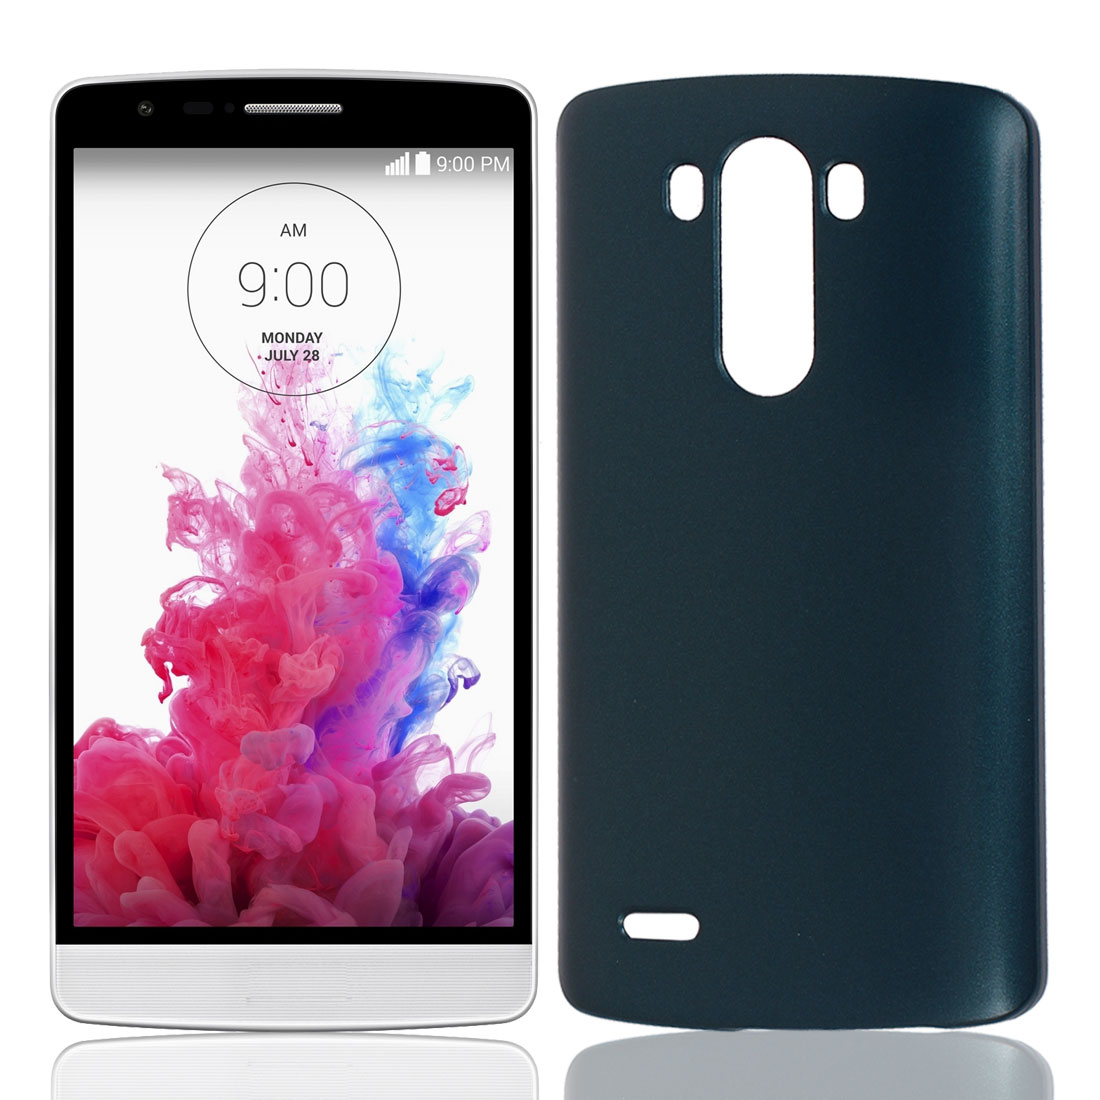 Green Hard Plastic Dust Proof Case Cover Phone Protective Shell Guard Skin for LG G3